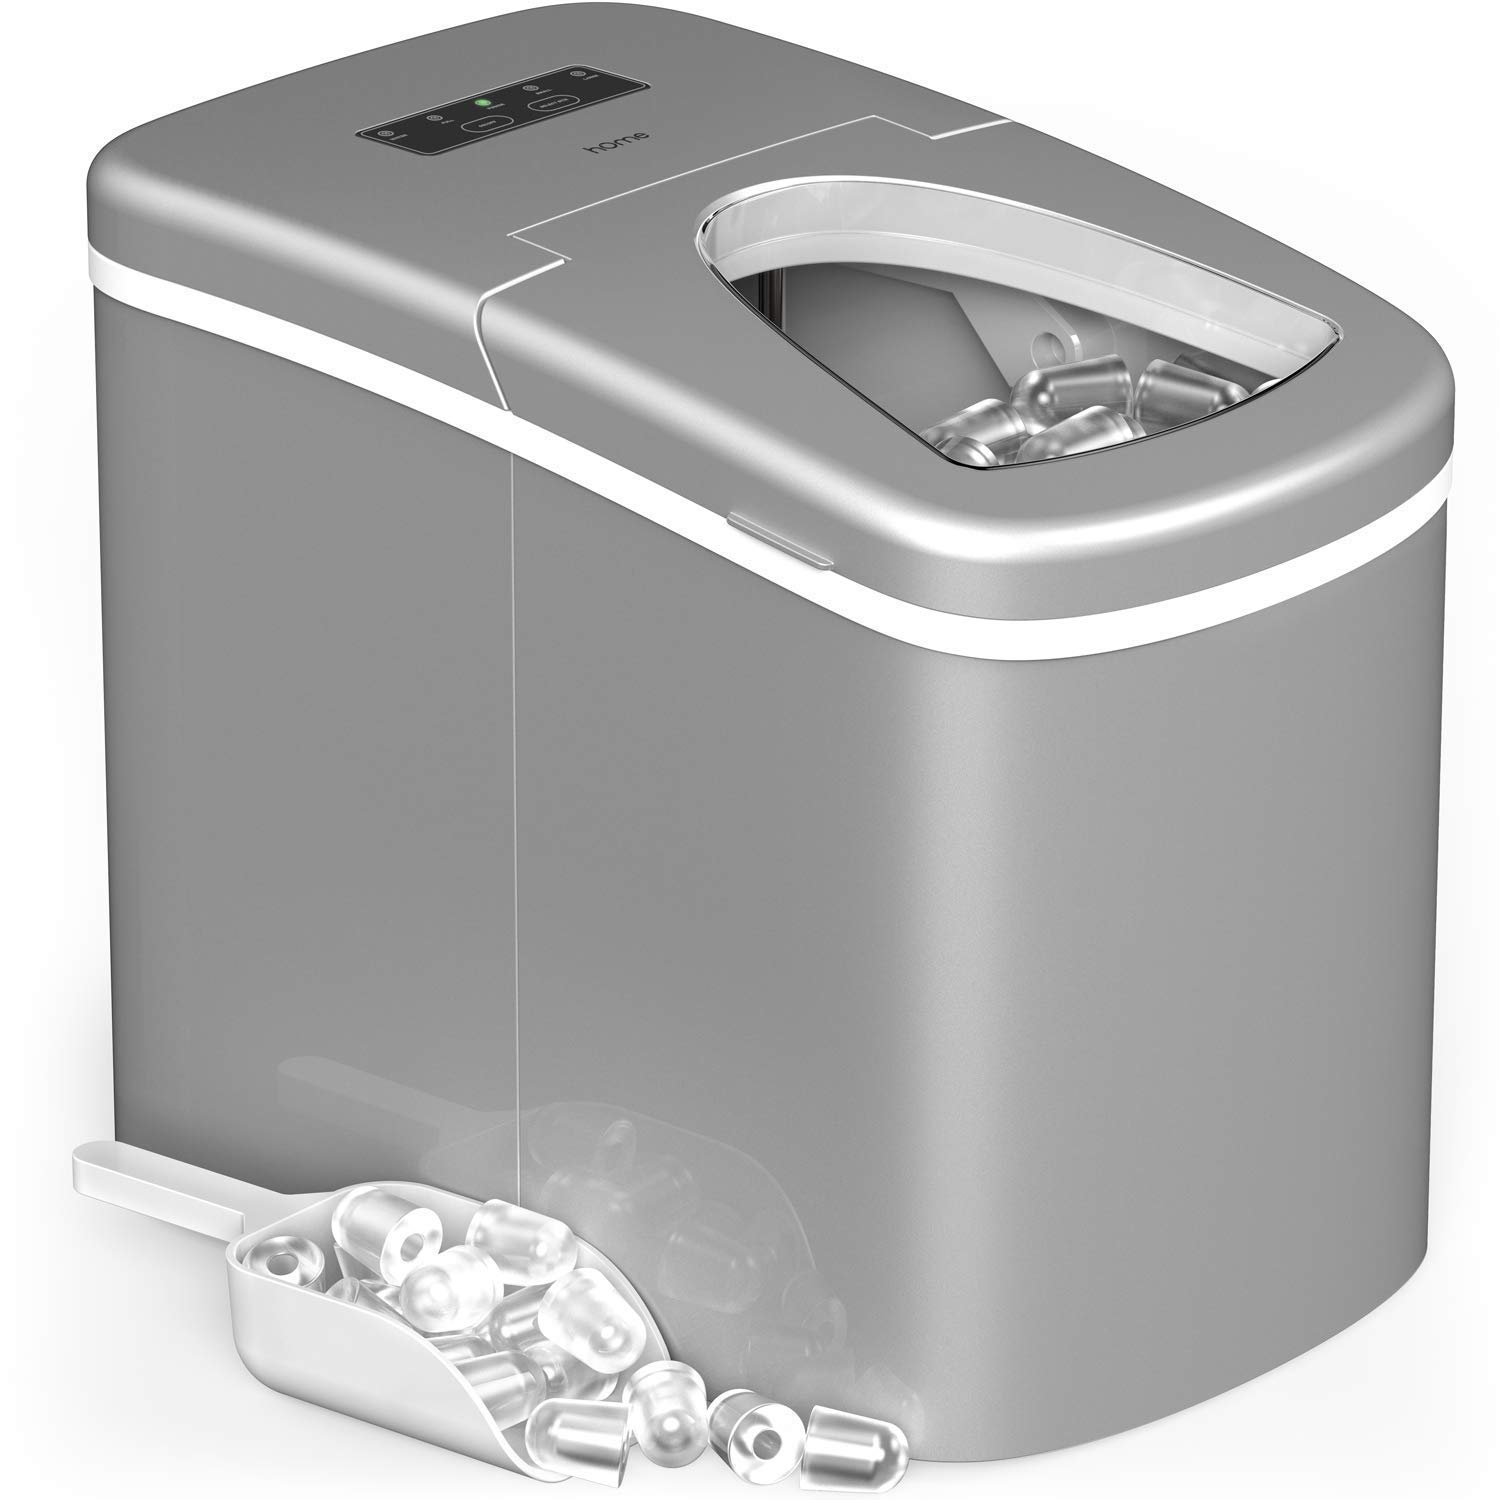 hOmeLabs Portable Ice Maker Machine for Countertop - Makes 26 lbs of Ice per 24 hours - Ice Cubes ready in 8 Minutes - Electric Ice Making Machine with Ice Scoop and 1.5 lb Ice Storage - Metallic Gray by hOmeLabs